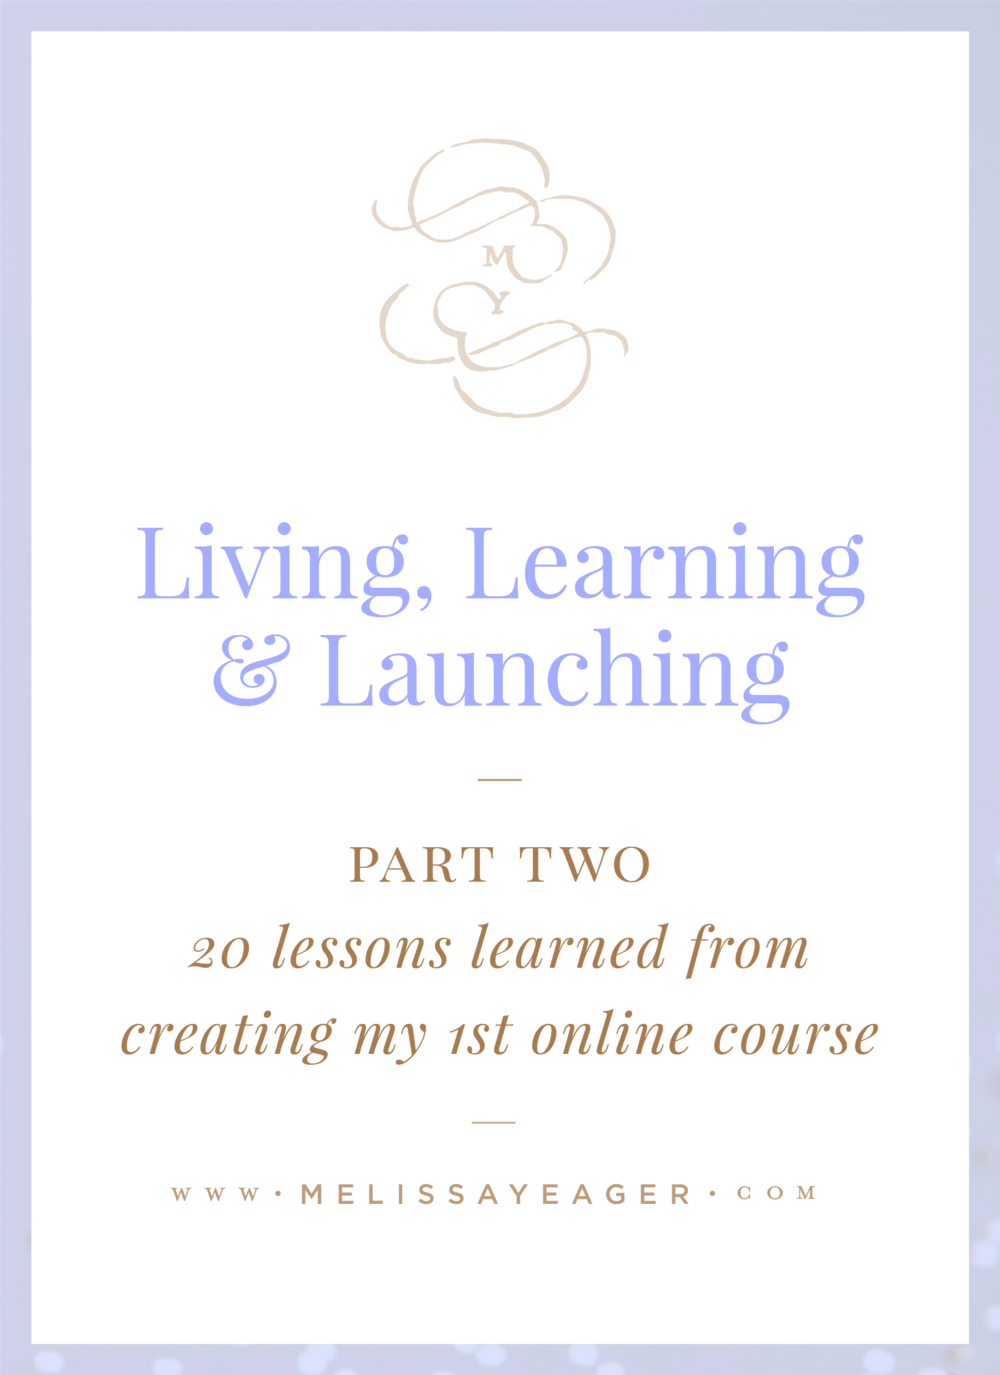 Living, Learning & Launching - Part 2 - 20 lessons learned from creating my 1st online course